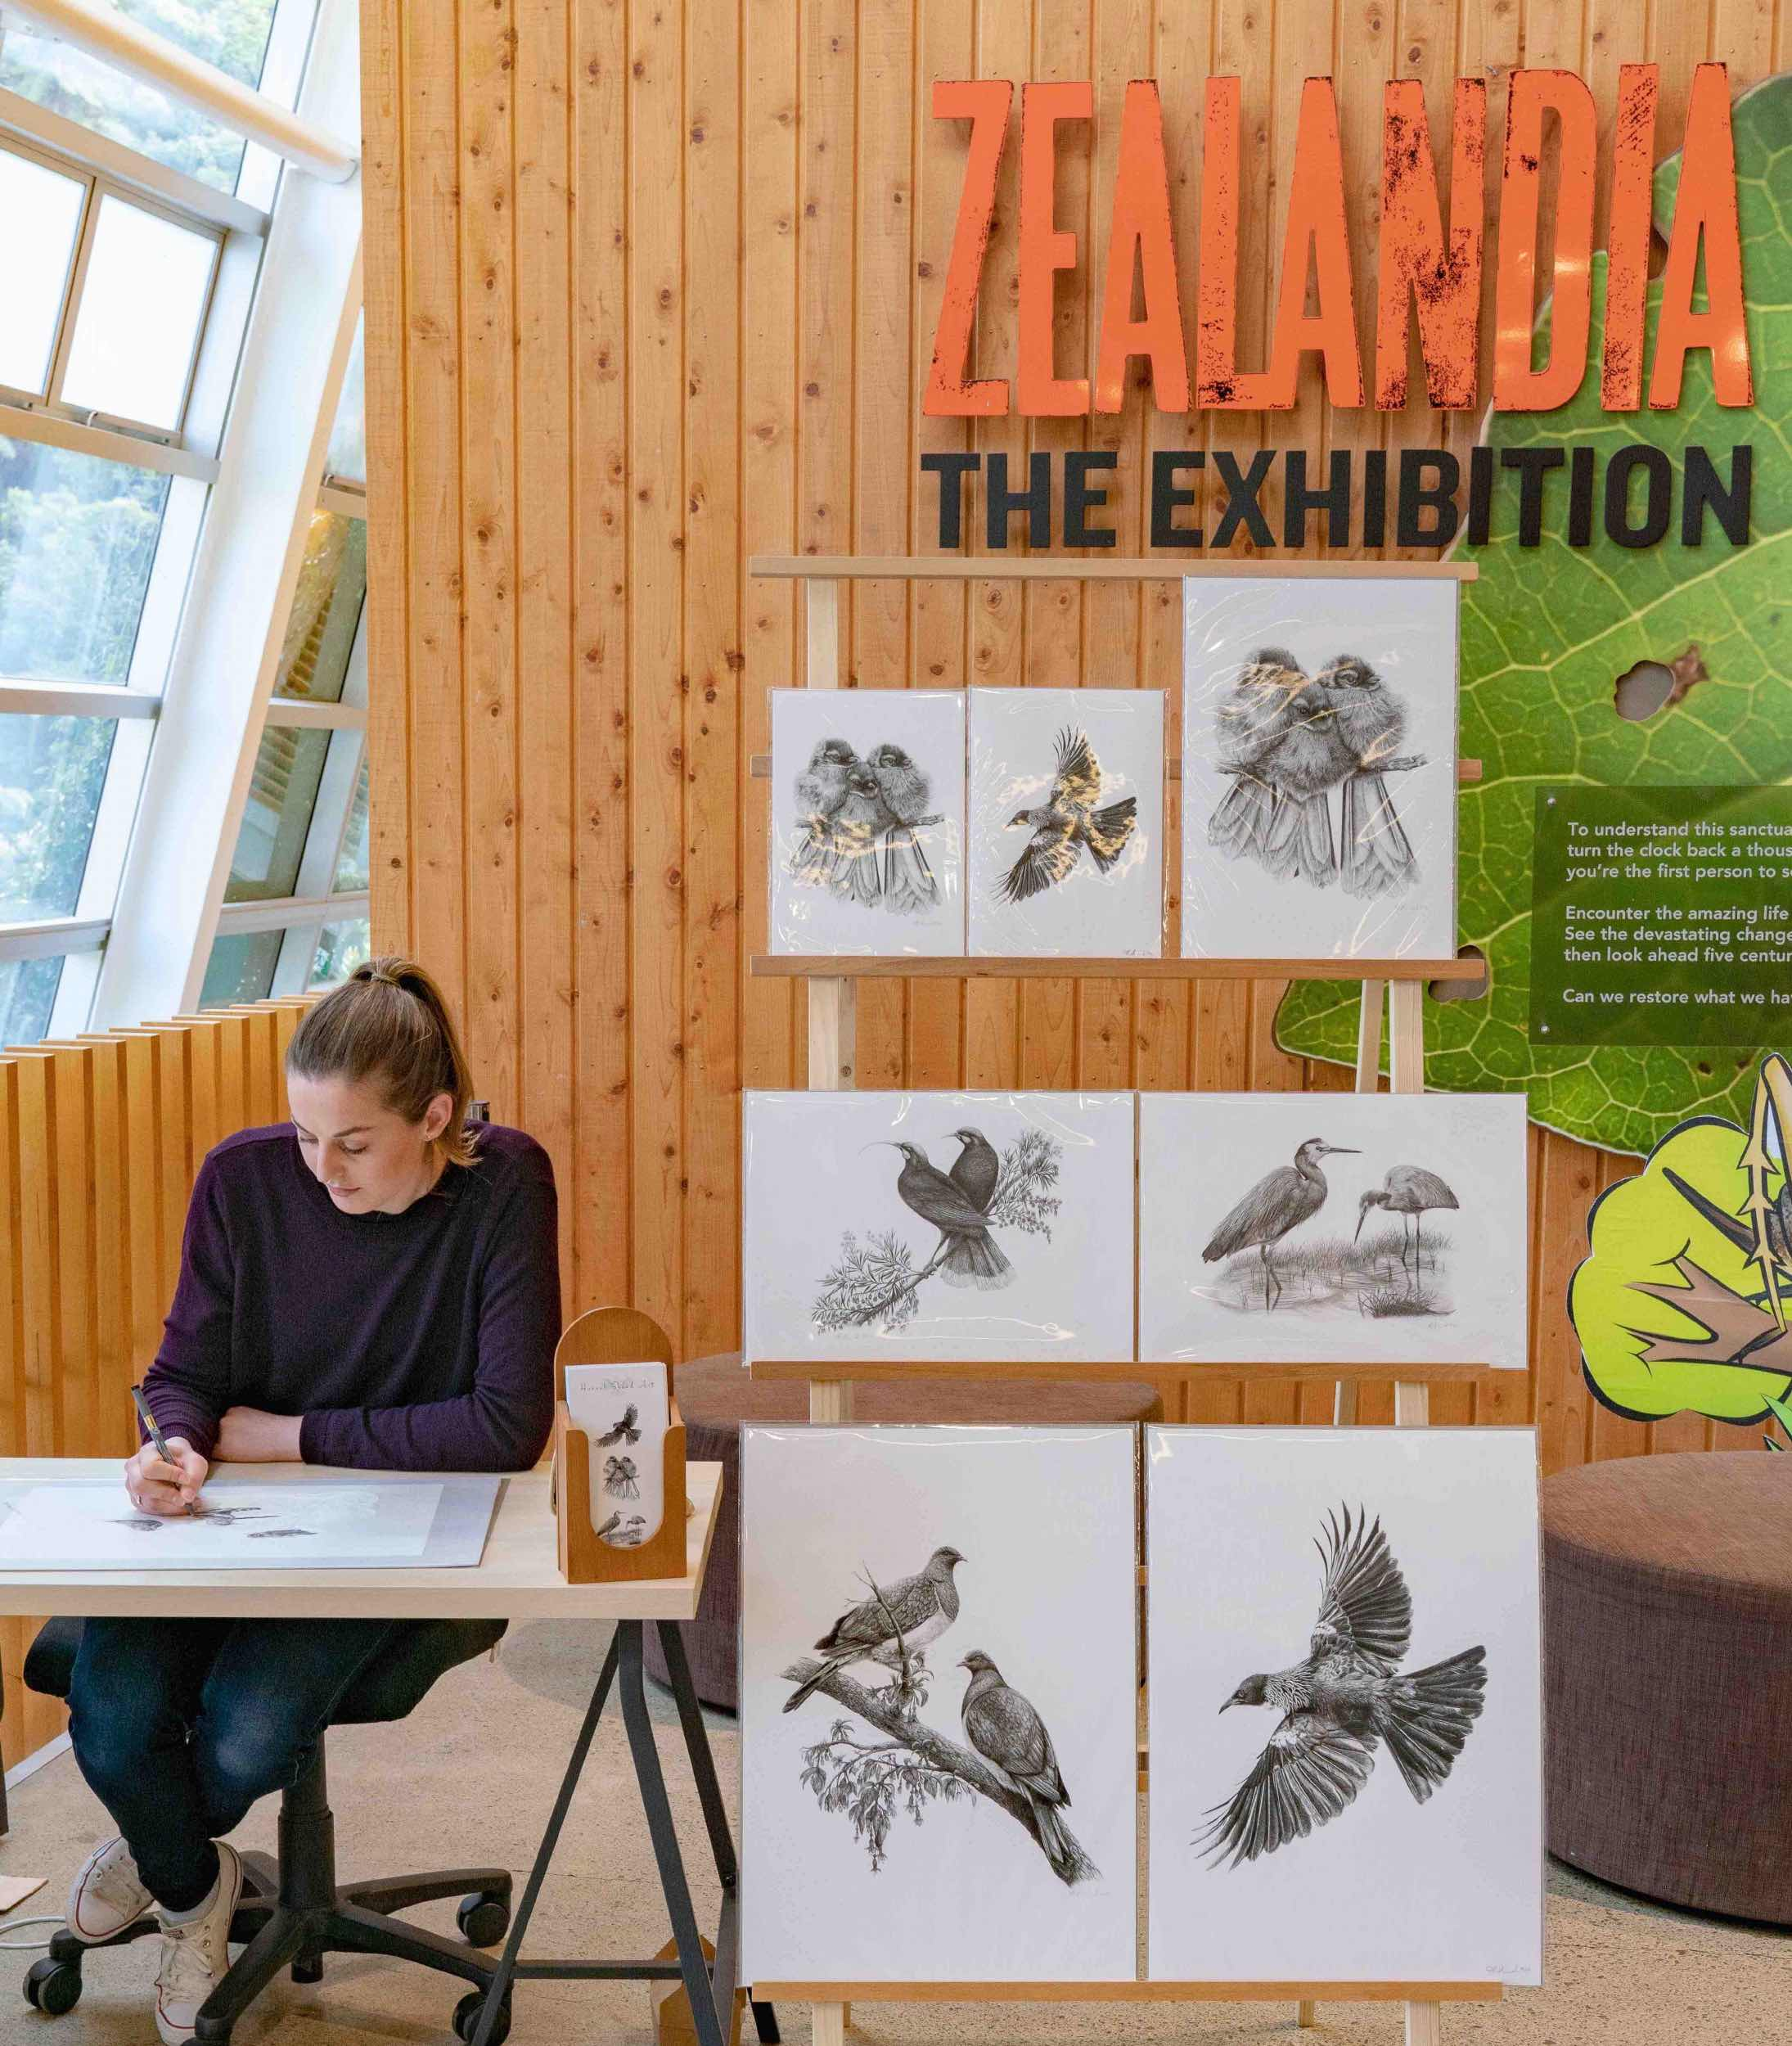 Hannah draws at Zealandia with prints on display.jpg